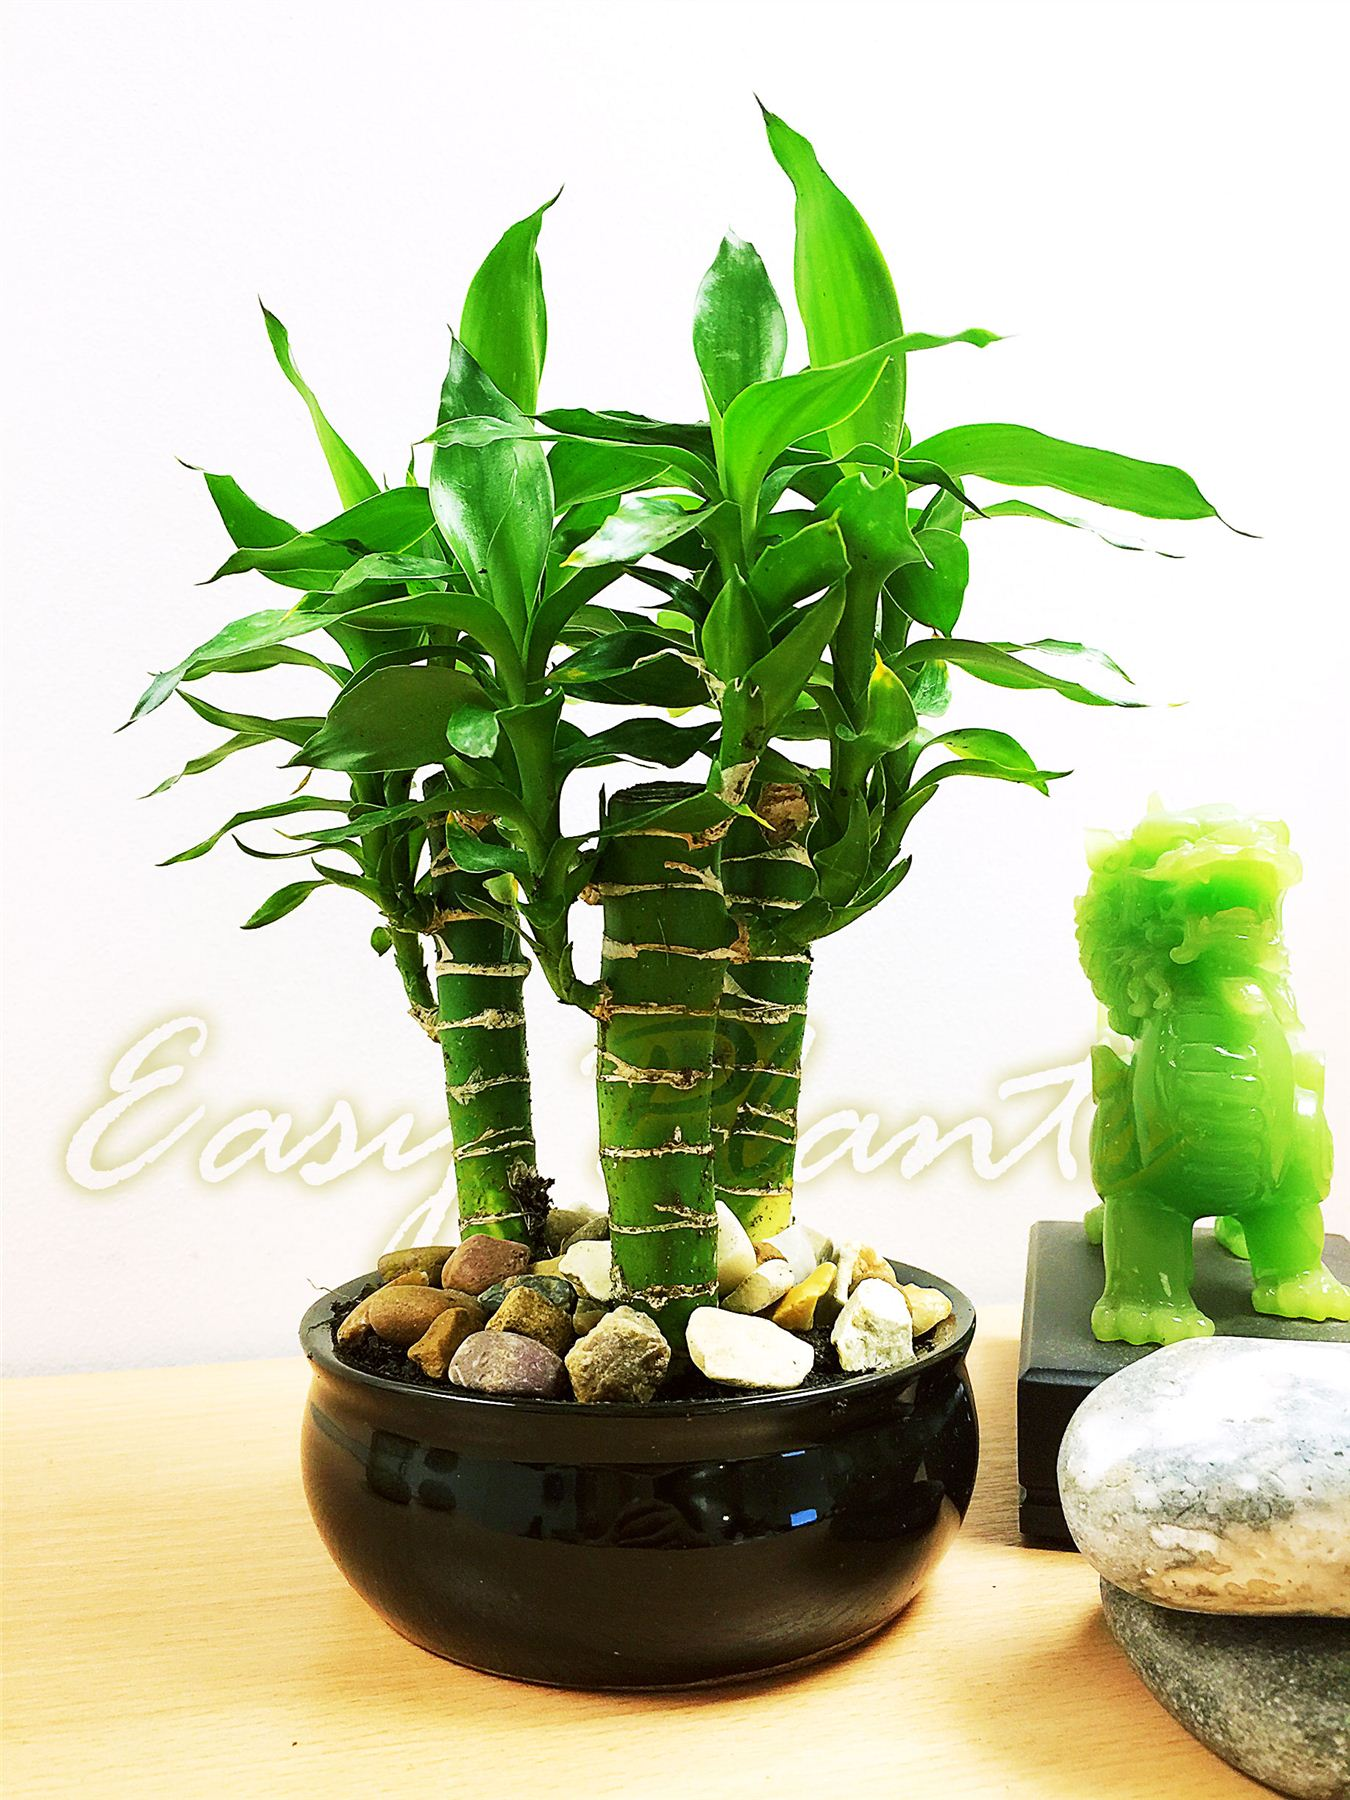 1 unusal lucky tiger bamboo 3 trunks group plants ceramic pot bonsai feng shui ebay. Black Bedroom Furniture Sets. Home Design Ideas